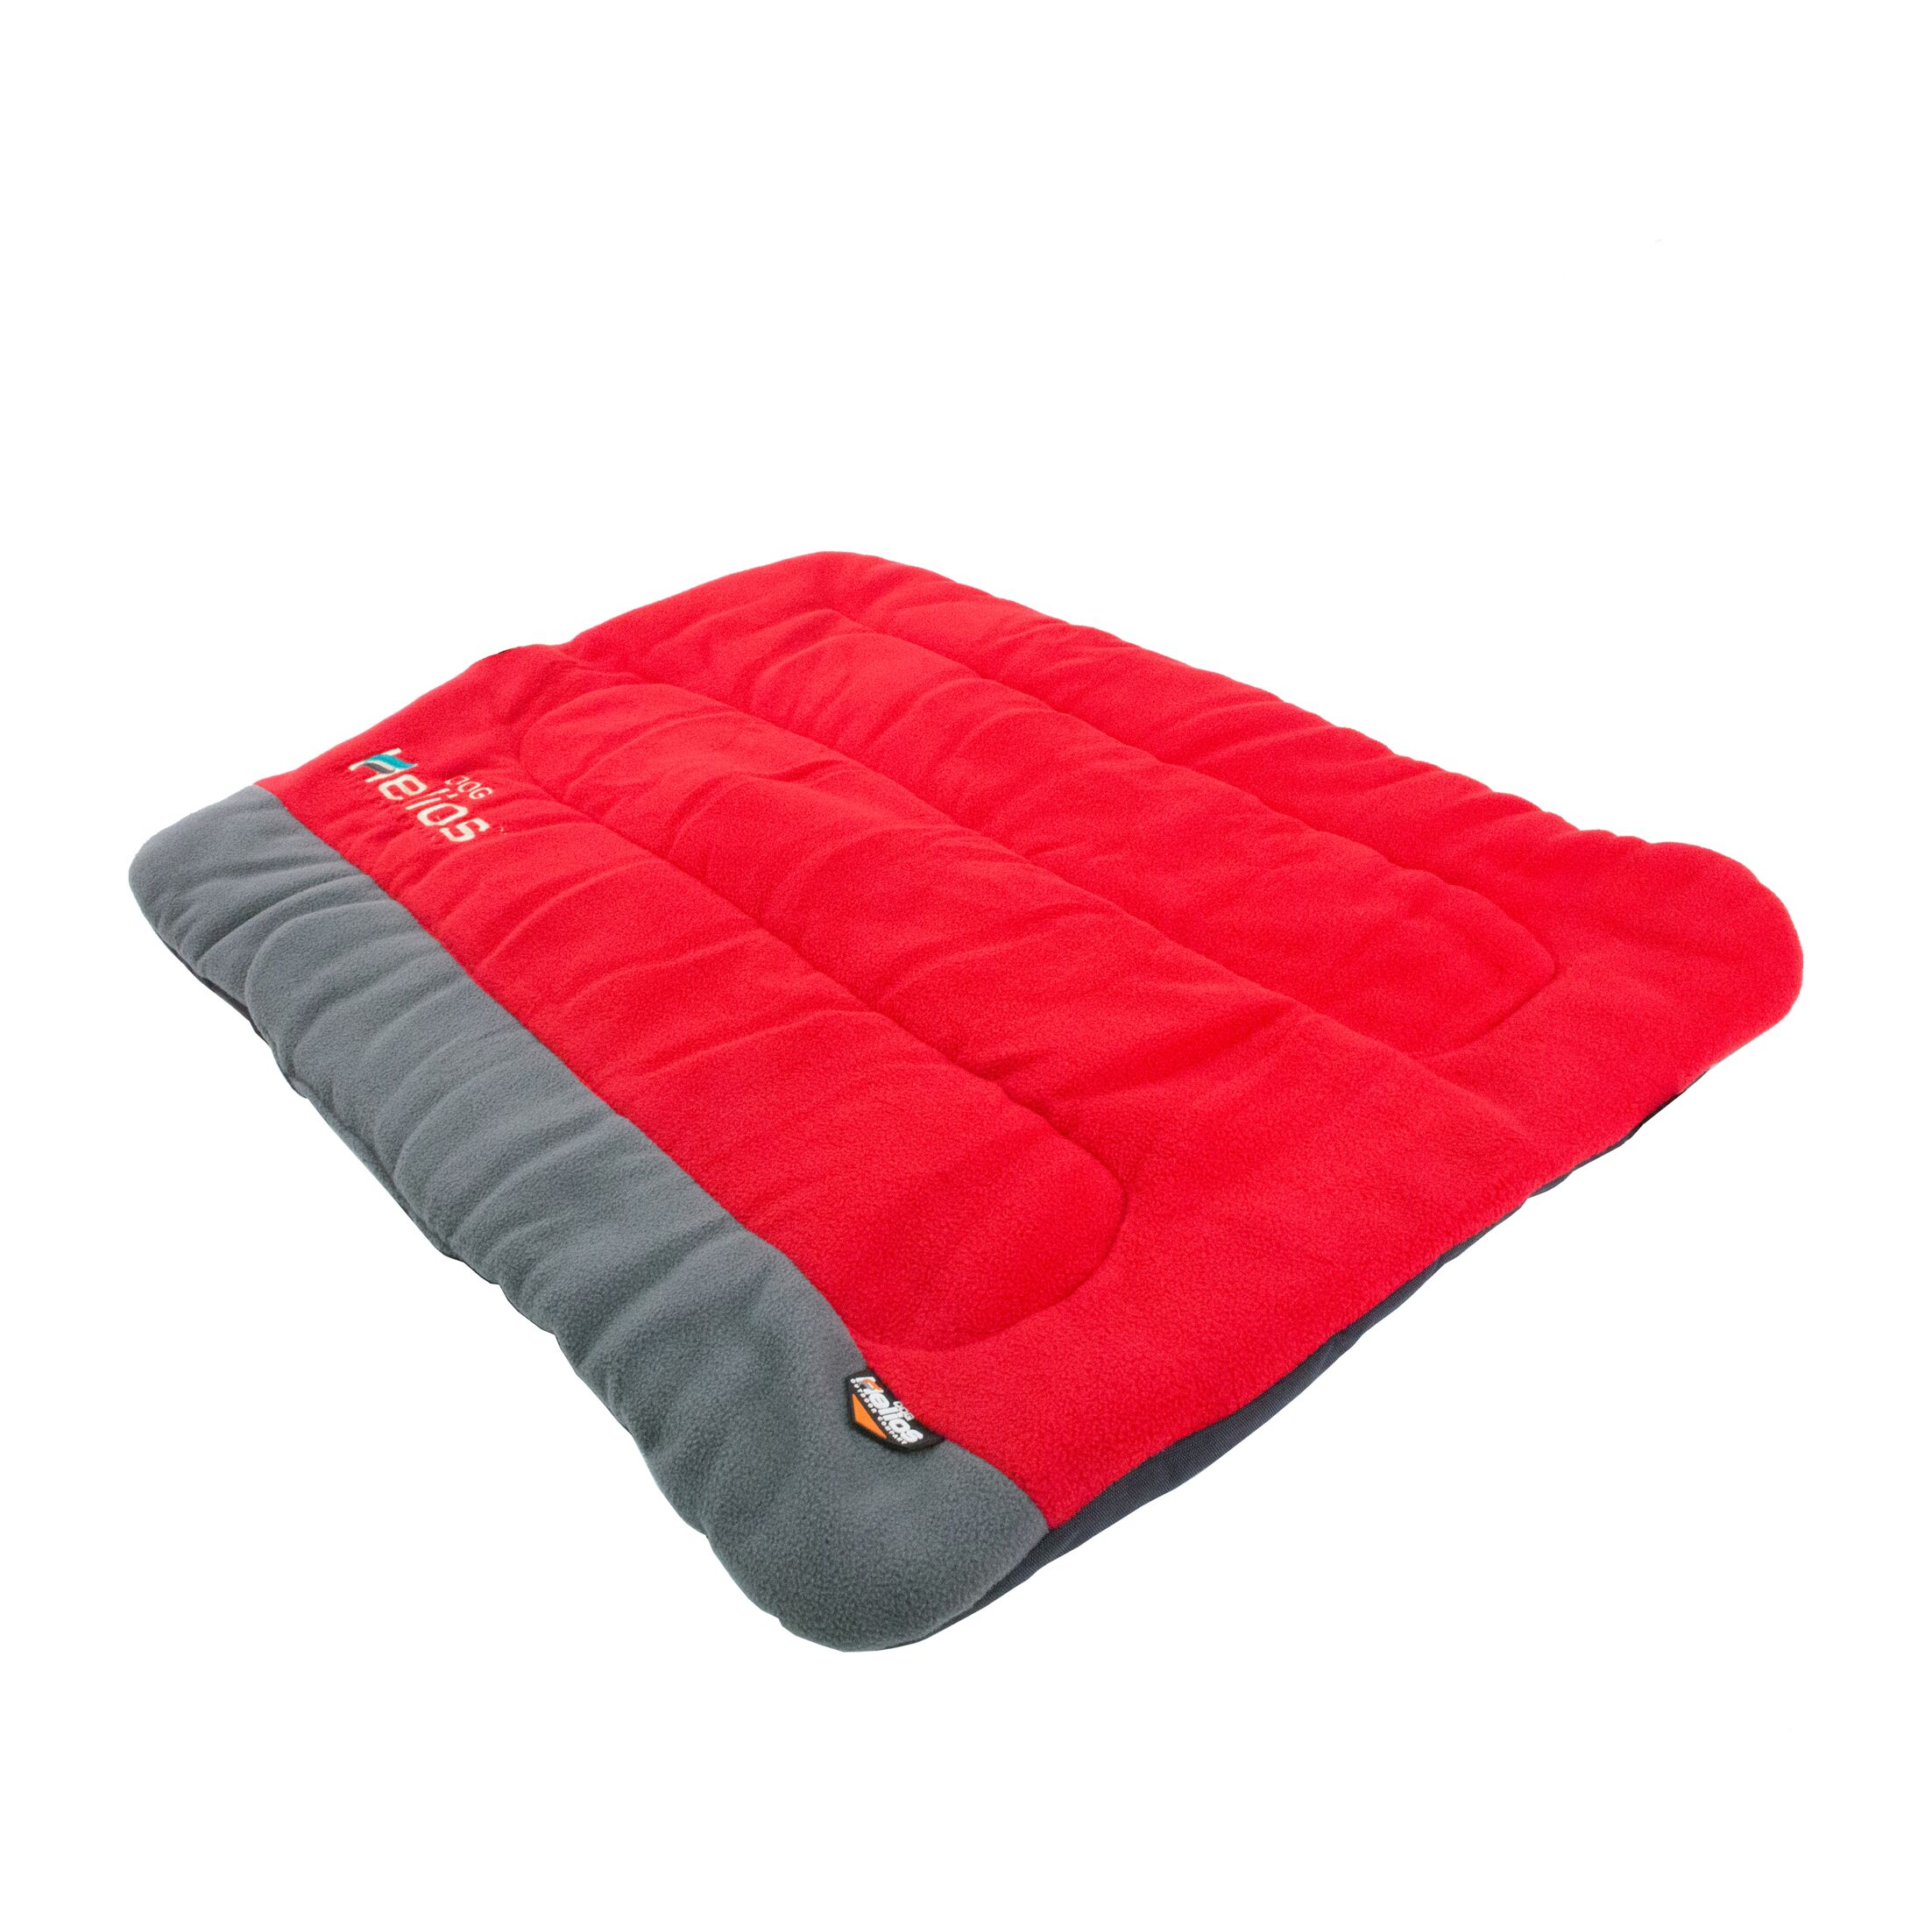 Combat-Terrain Outdoor Cordura-Nyco Travel Folding Dog Bed Size: Medium (31.5